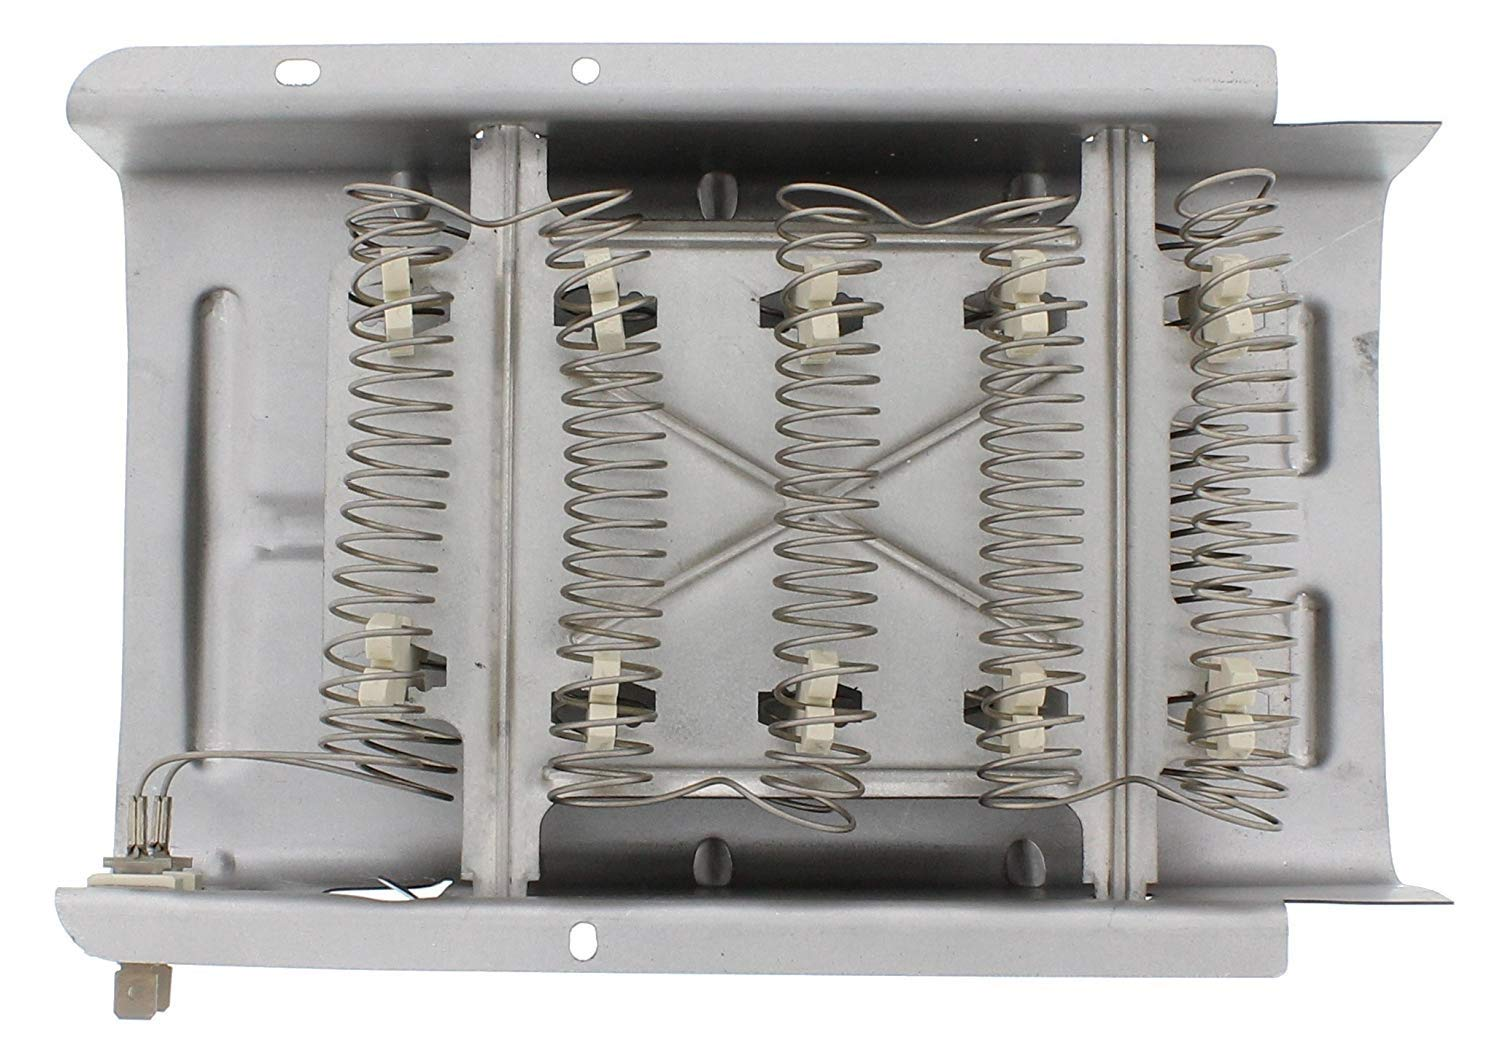 279838 Dryer Heating Element For Whirlpool Kenmore SEARS, MAYTAG, AMANA, ADMIRAL, KITCHENAID, MAGIC CHEF, NORGE Replaces 3403585, 8565582, PS3343130, AP3094254